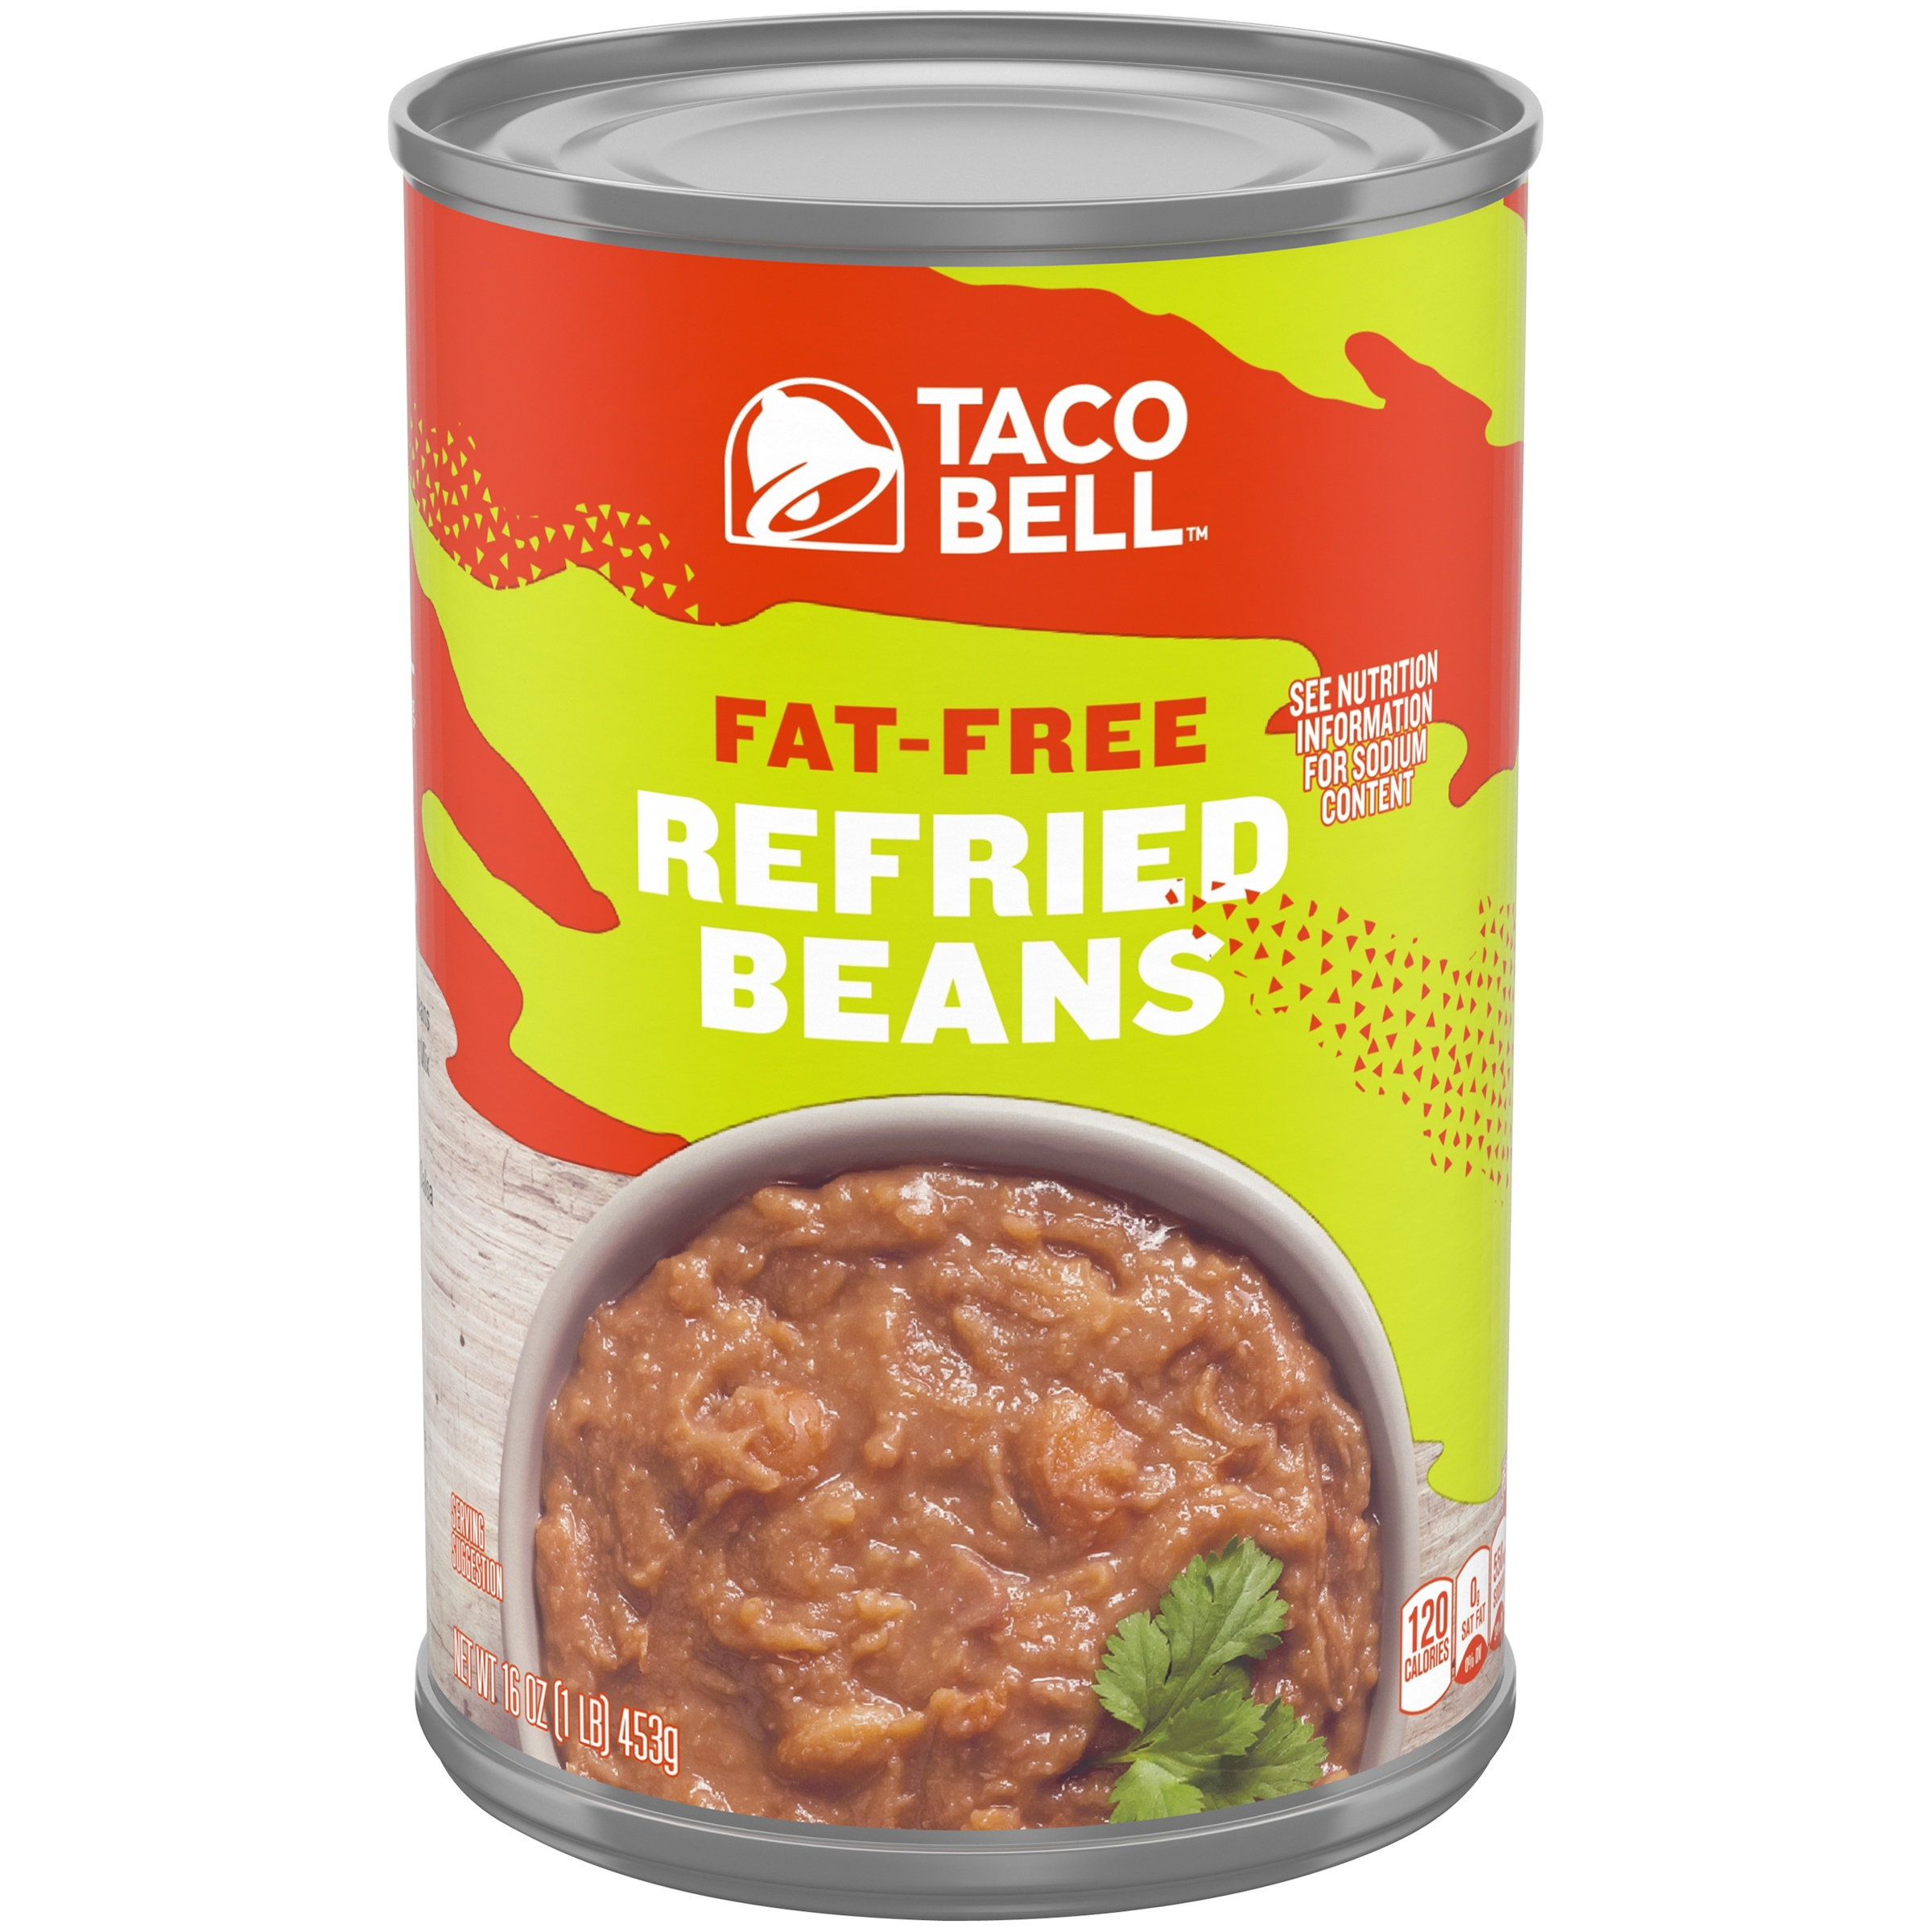 Taco Bell Fat-Free Refried Beans 16 oz. Can